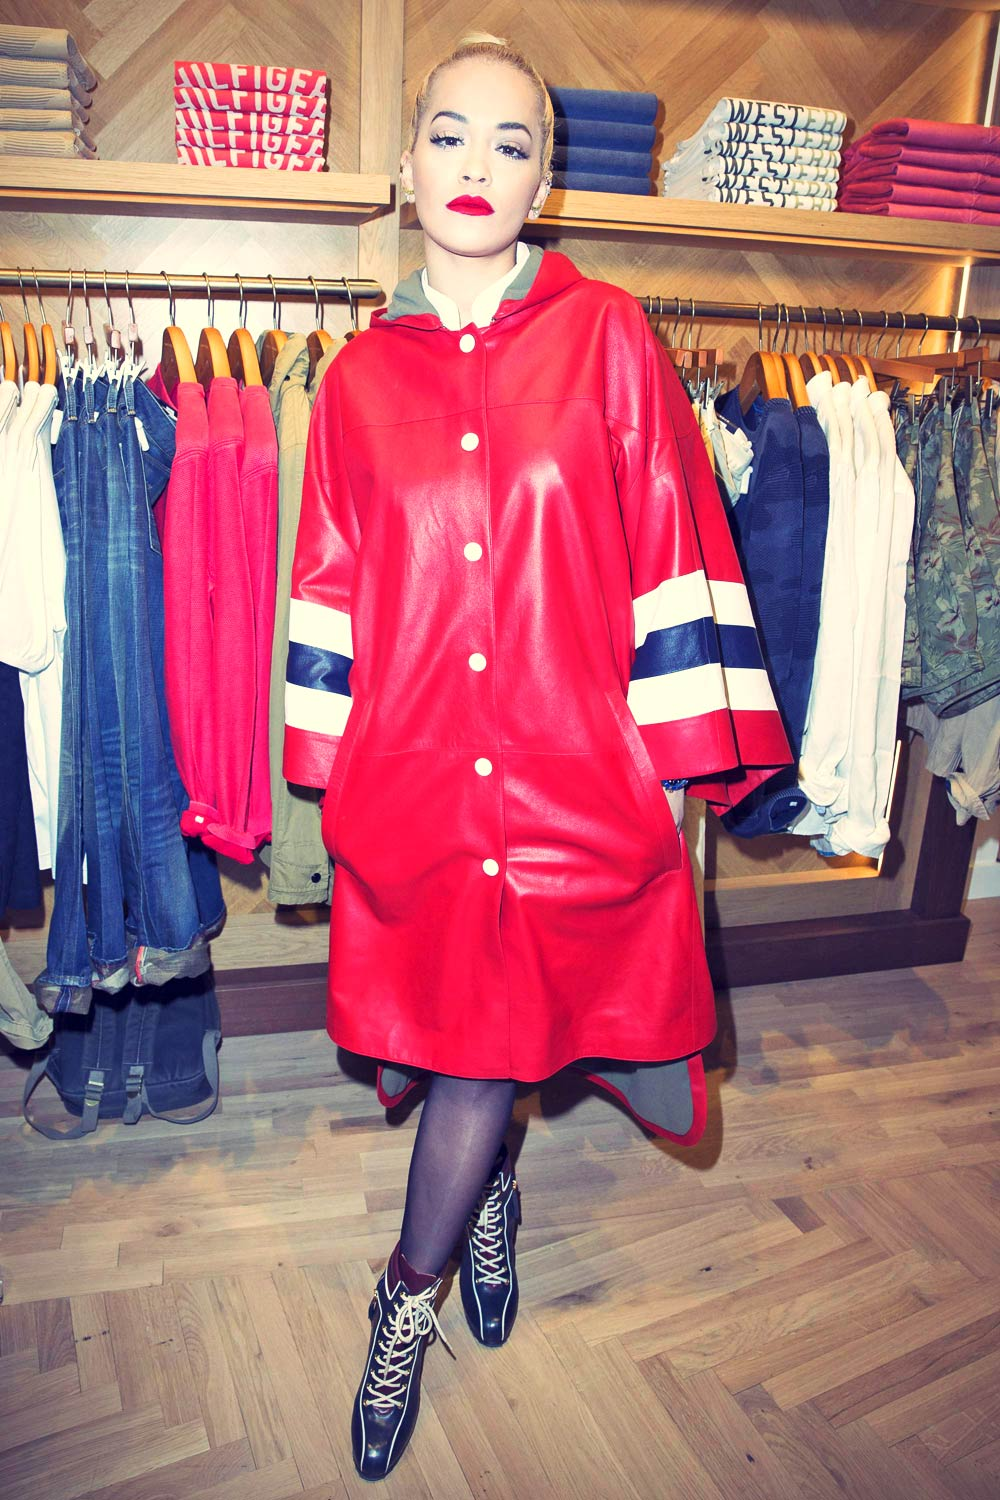 Rita Ora attends the Tommy Hilfiger Opening Store